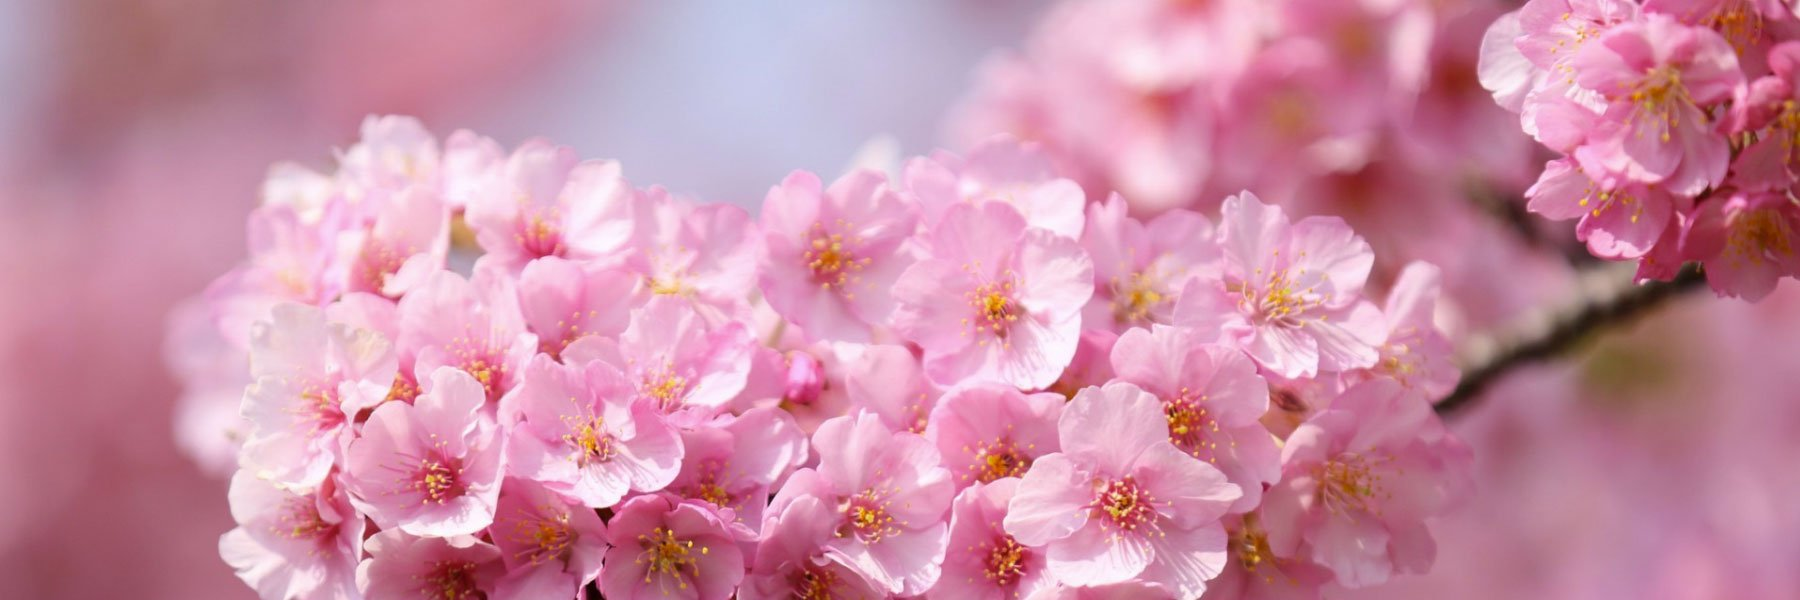 3 Best Cherry Blossom Sakura Trees in Japan